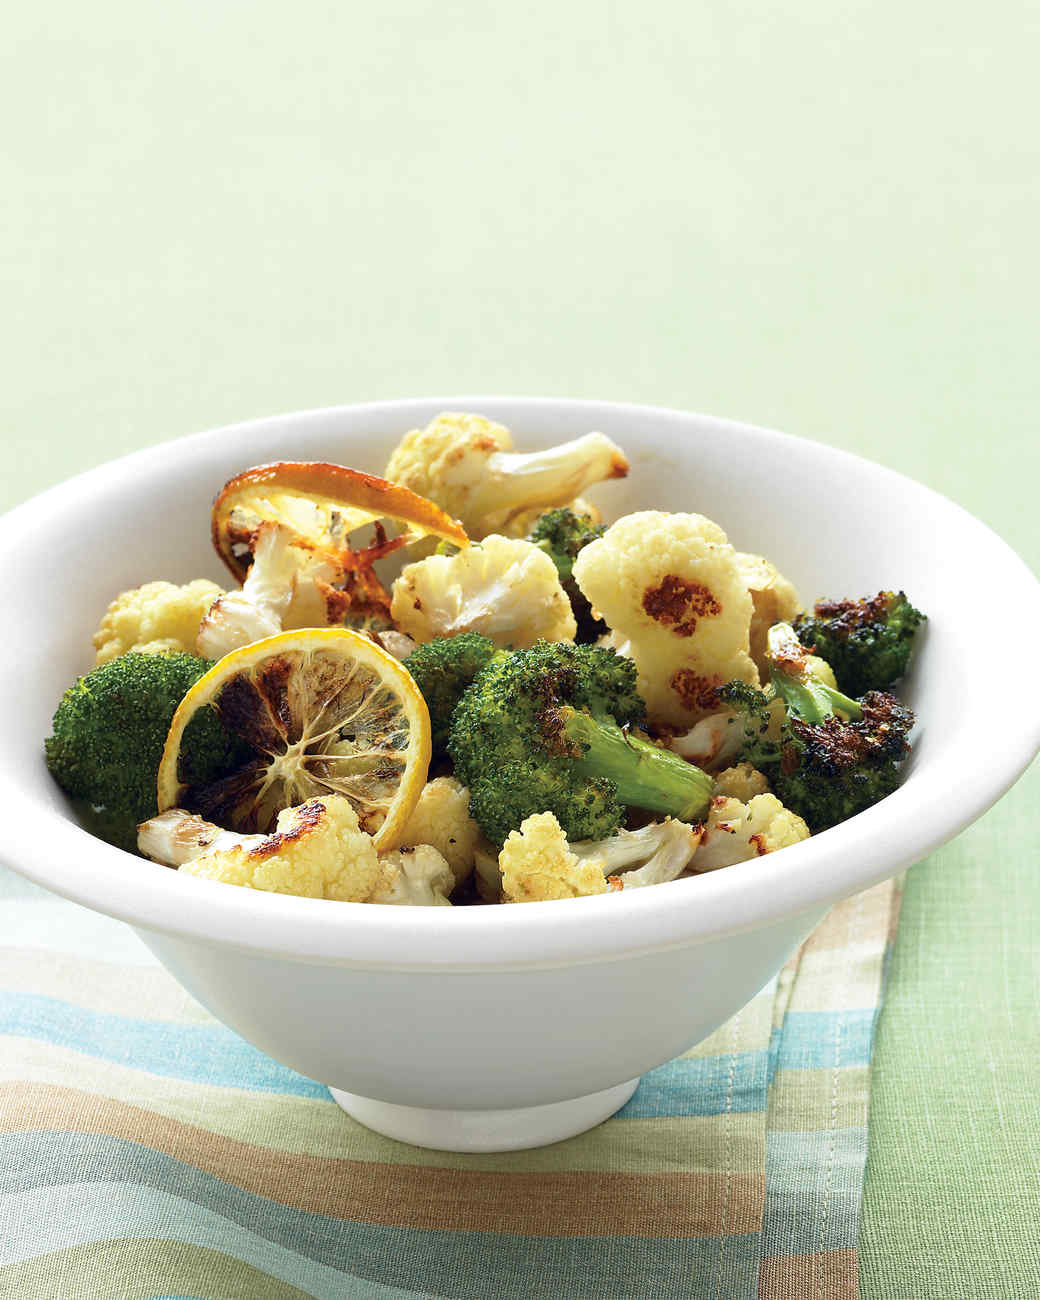 Roasted Broccoli and Cauliflower with Lemon and Garlic